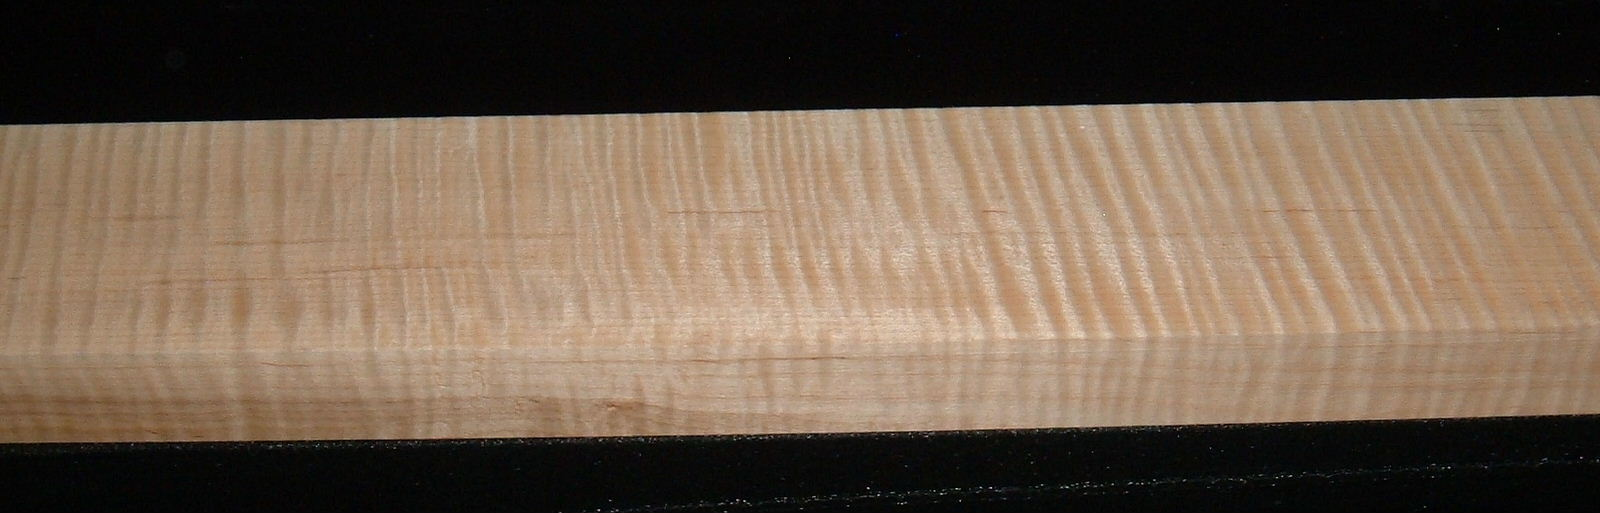 QS2007-23, 1-3/16x3x43, Quartersawn Curly Tiger Maple